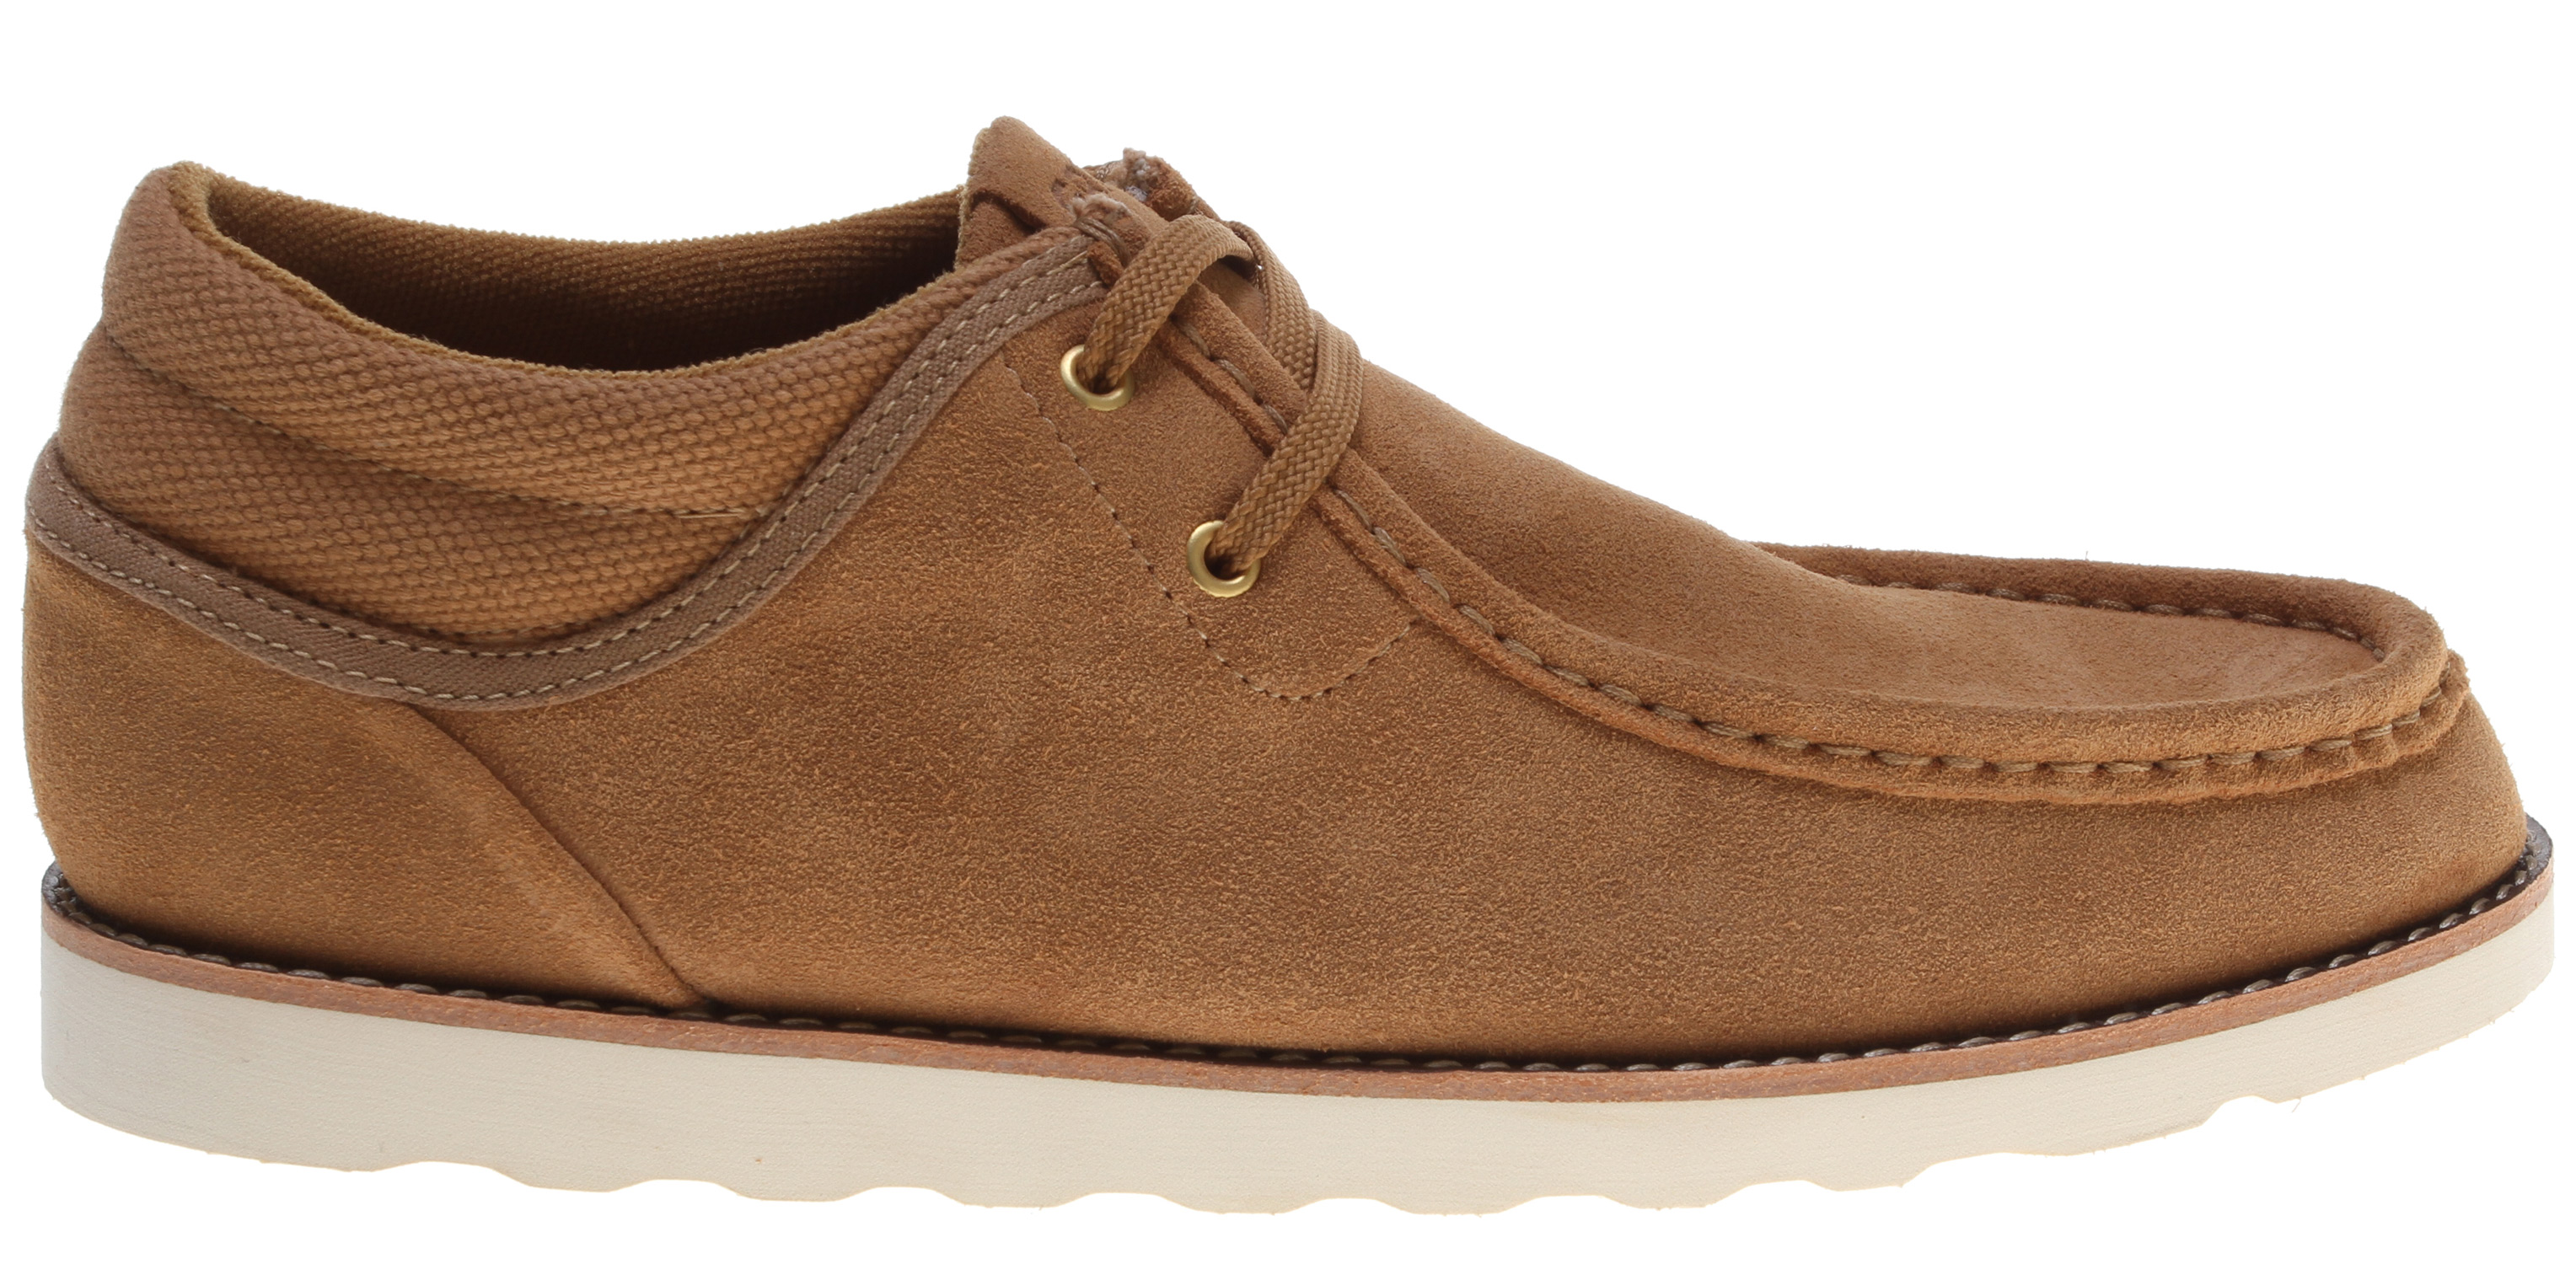 Key Features of the Gravis Mason Shoes: Premium Suede Uppers Gusseted Tongue Construction Insulated Terry Cloth Lining Comfortable Latex Footbed With Arch Support Durable One Piece Blown Rubber Outsole - $69.95